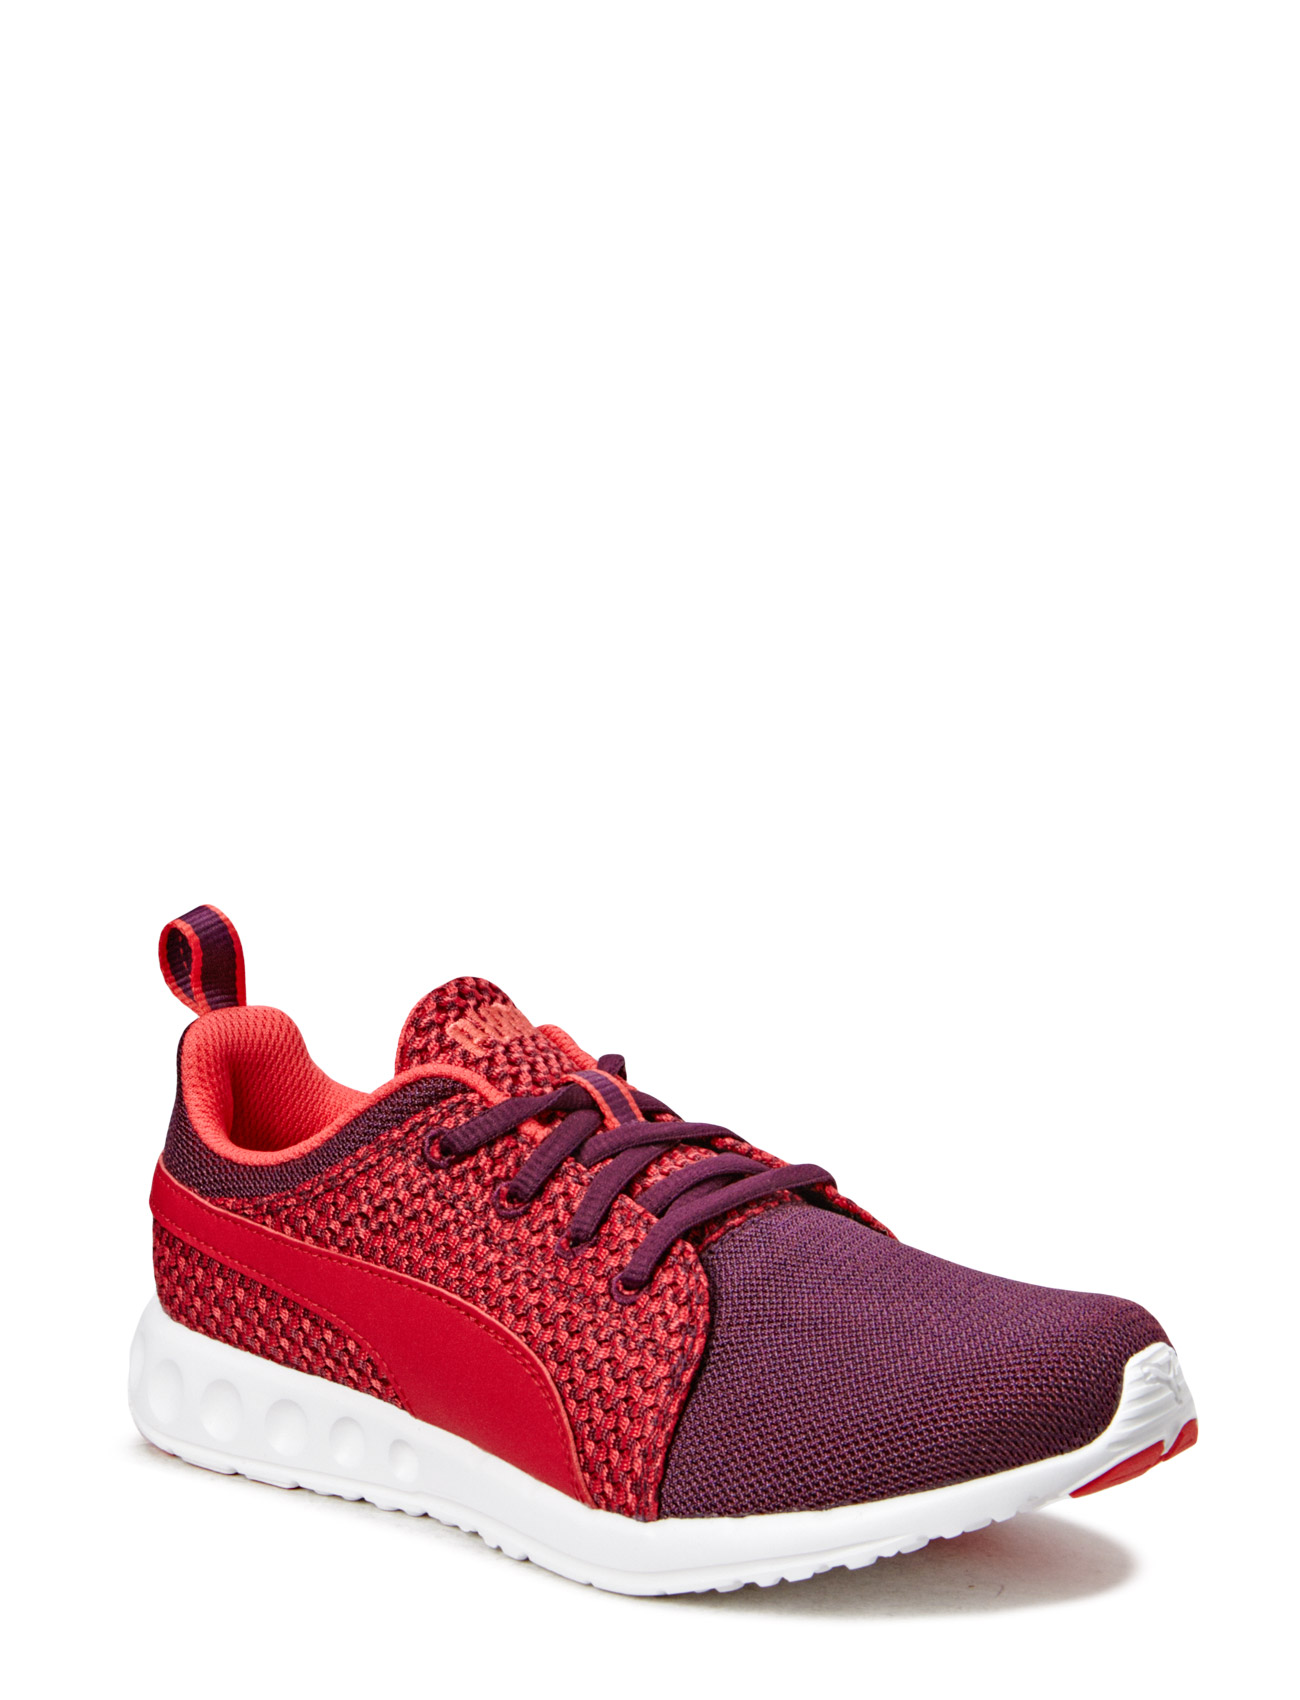 Carson Runner Knit Wn'S Puma Sneakers til Damer i